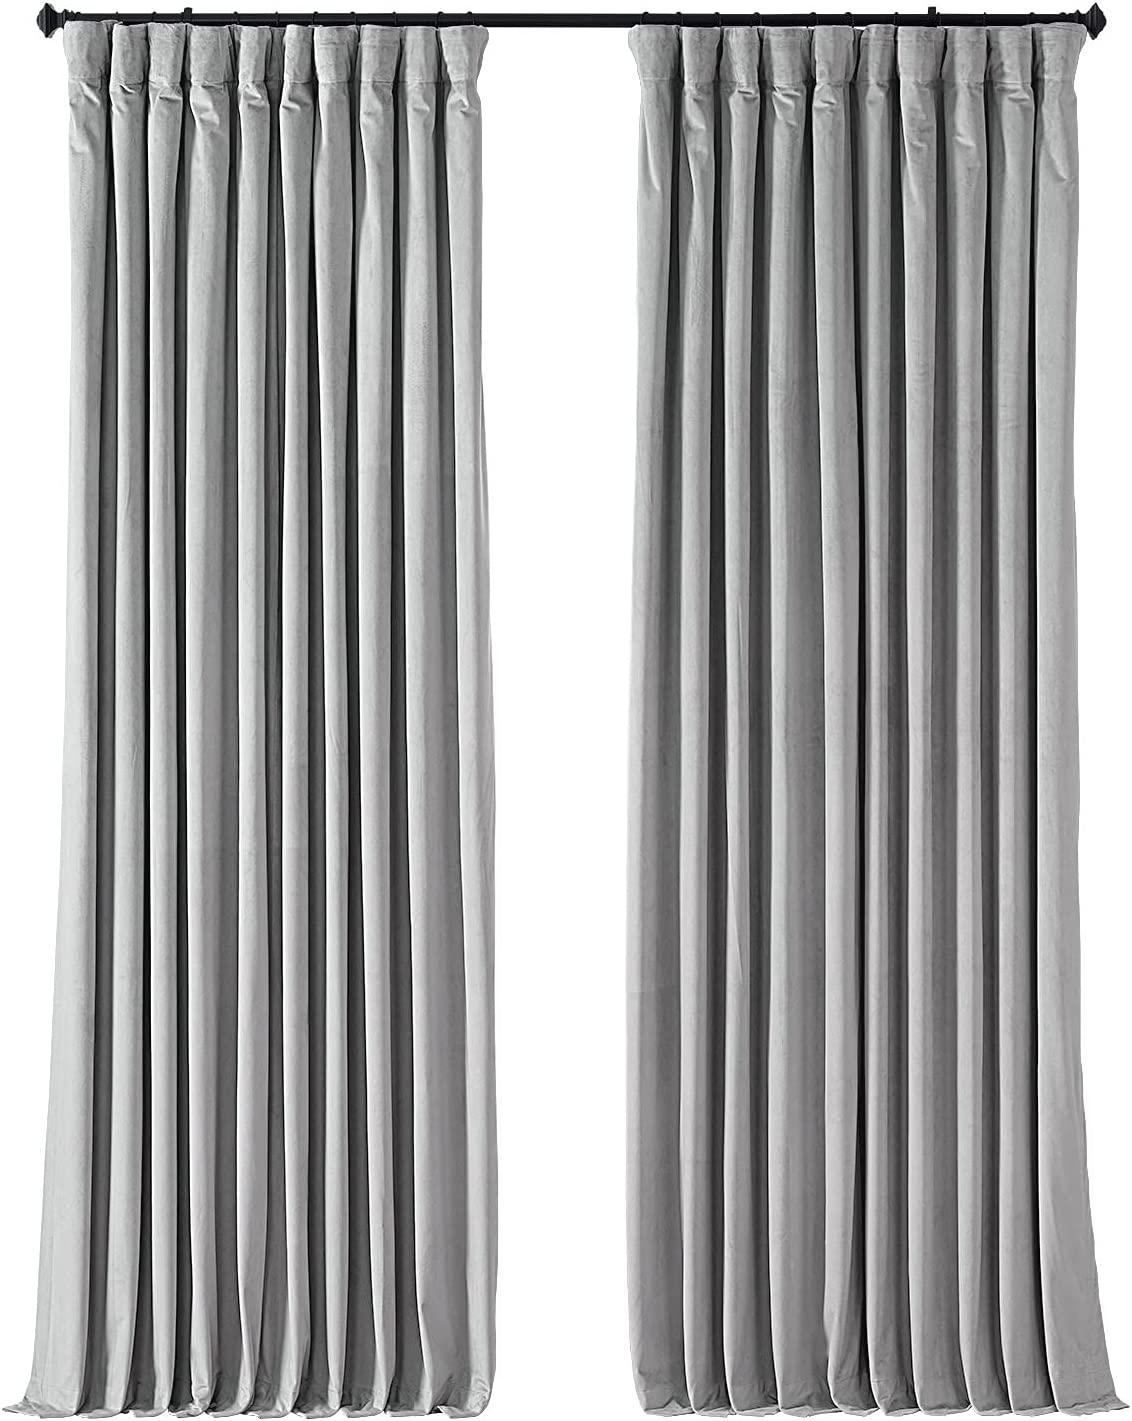 HPD Half Price Drapes sold out VPCH-VET160401-84 Chicago Mall Extra Signature Wide Bla